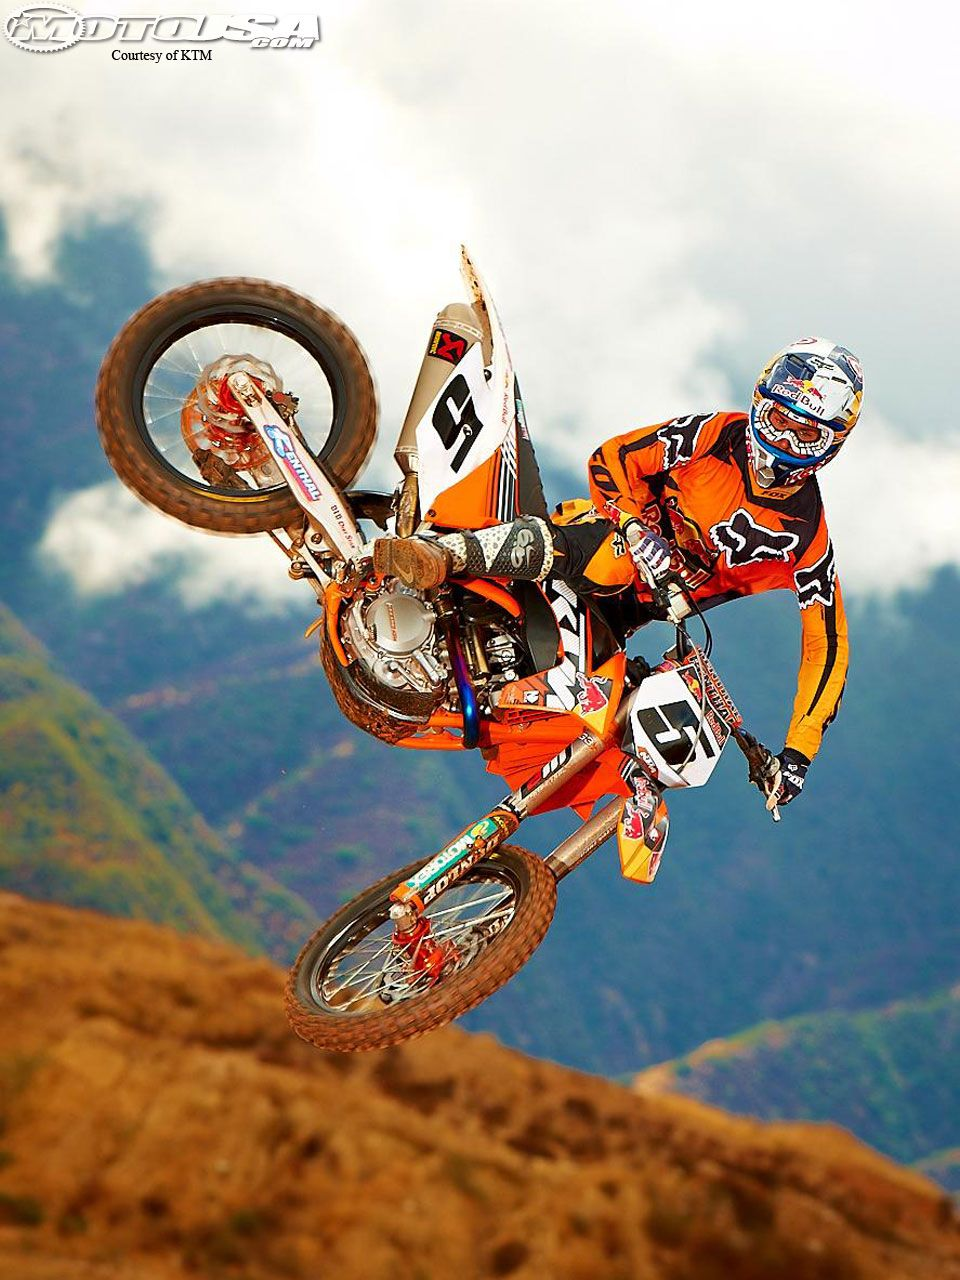 Check Out All The Latest Team Photos And Pre Season Testing For The Upcoming 2012 Ama Supercross Motocross Season Get Ktm Motocross Motocross Enduro Motocross Get wallpaper motocross ktm pictures